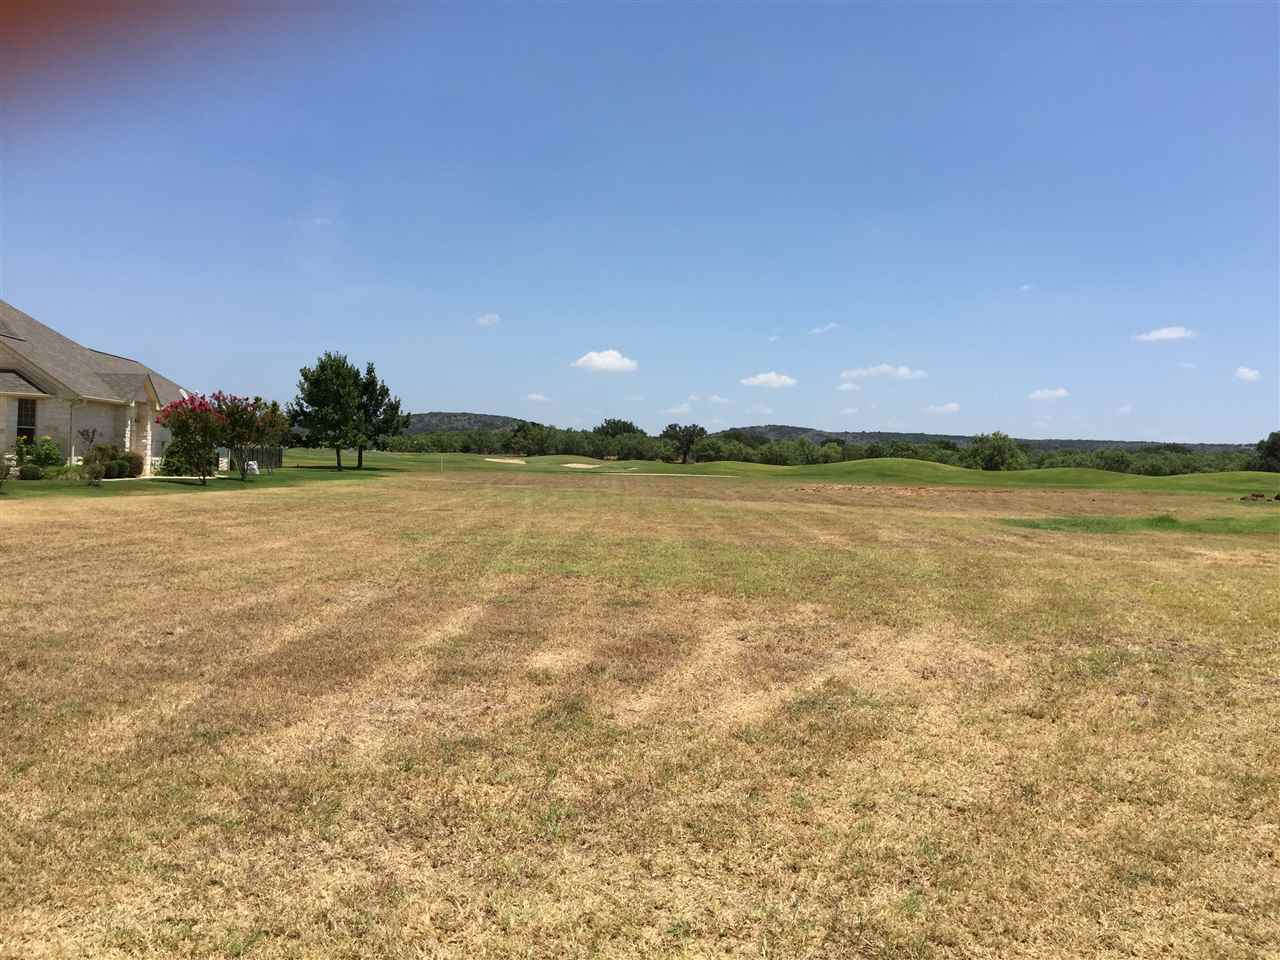 Additional photo for property listing at 112 Range way Circle  Kingsland, Texas 78639 United States